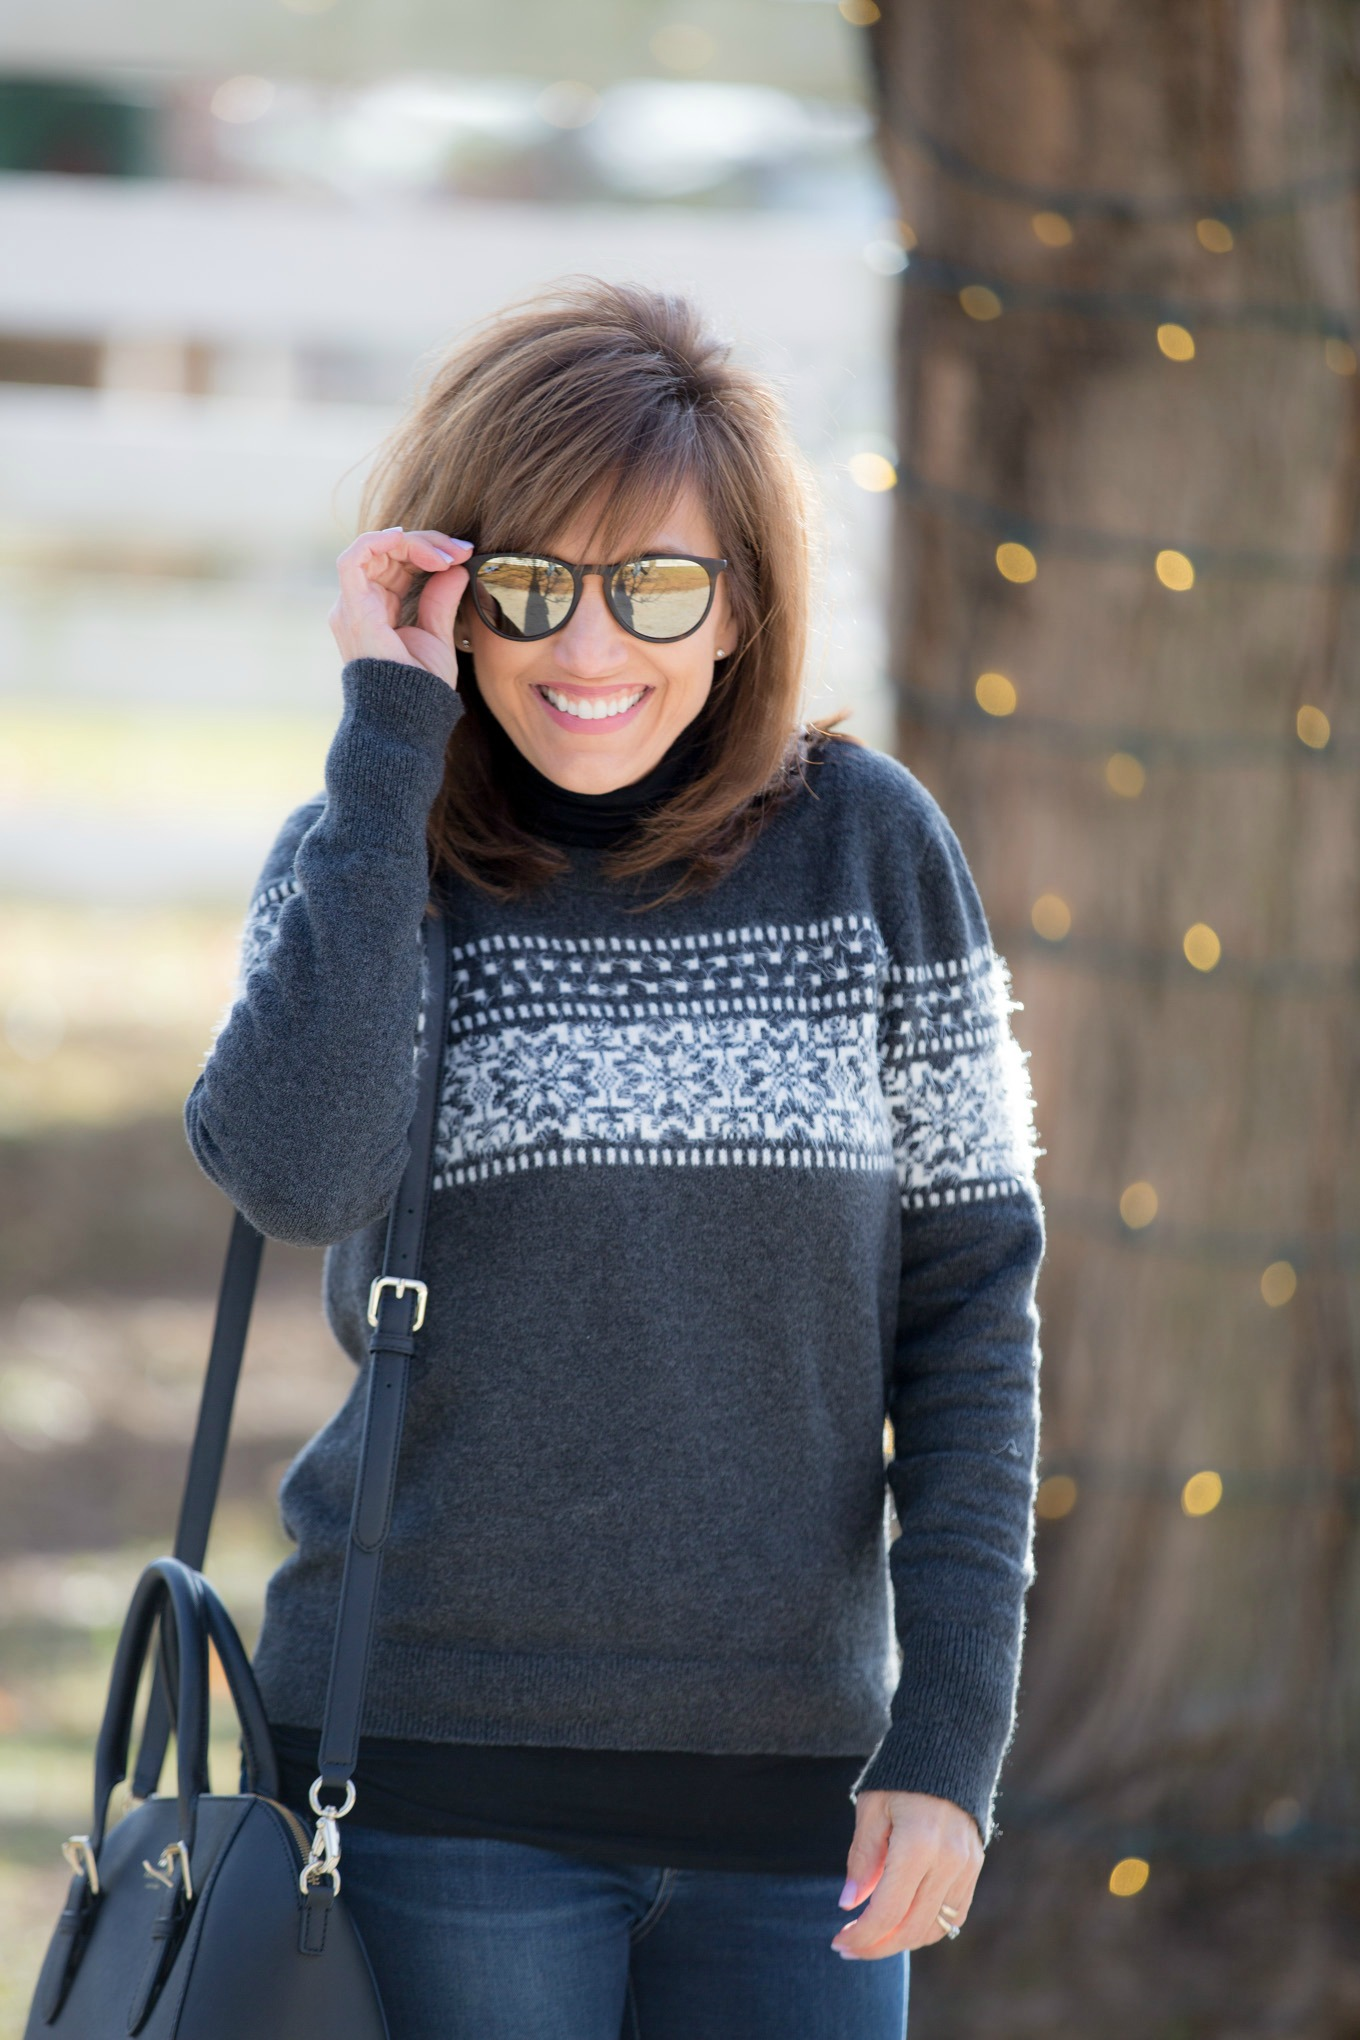 Fashion blogger, Cyndi Spivey, wearing the Erika sunglasses from Ray Ban.